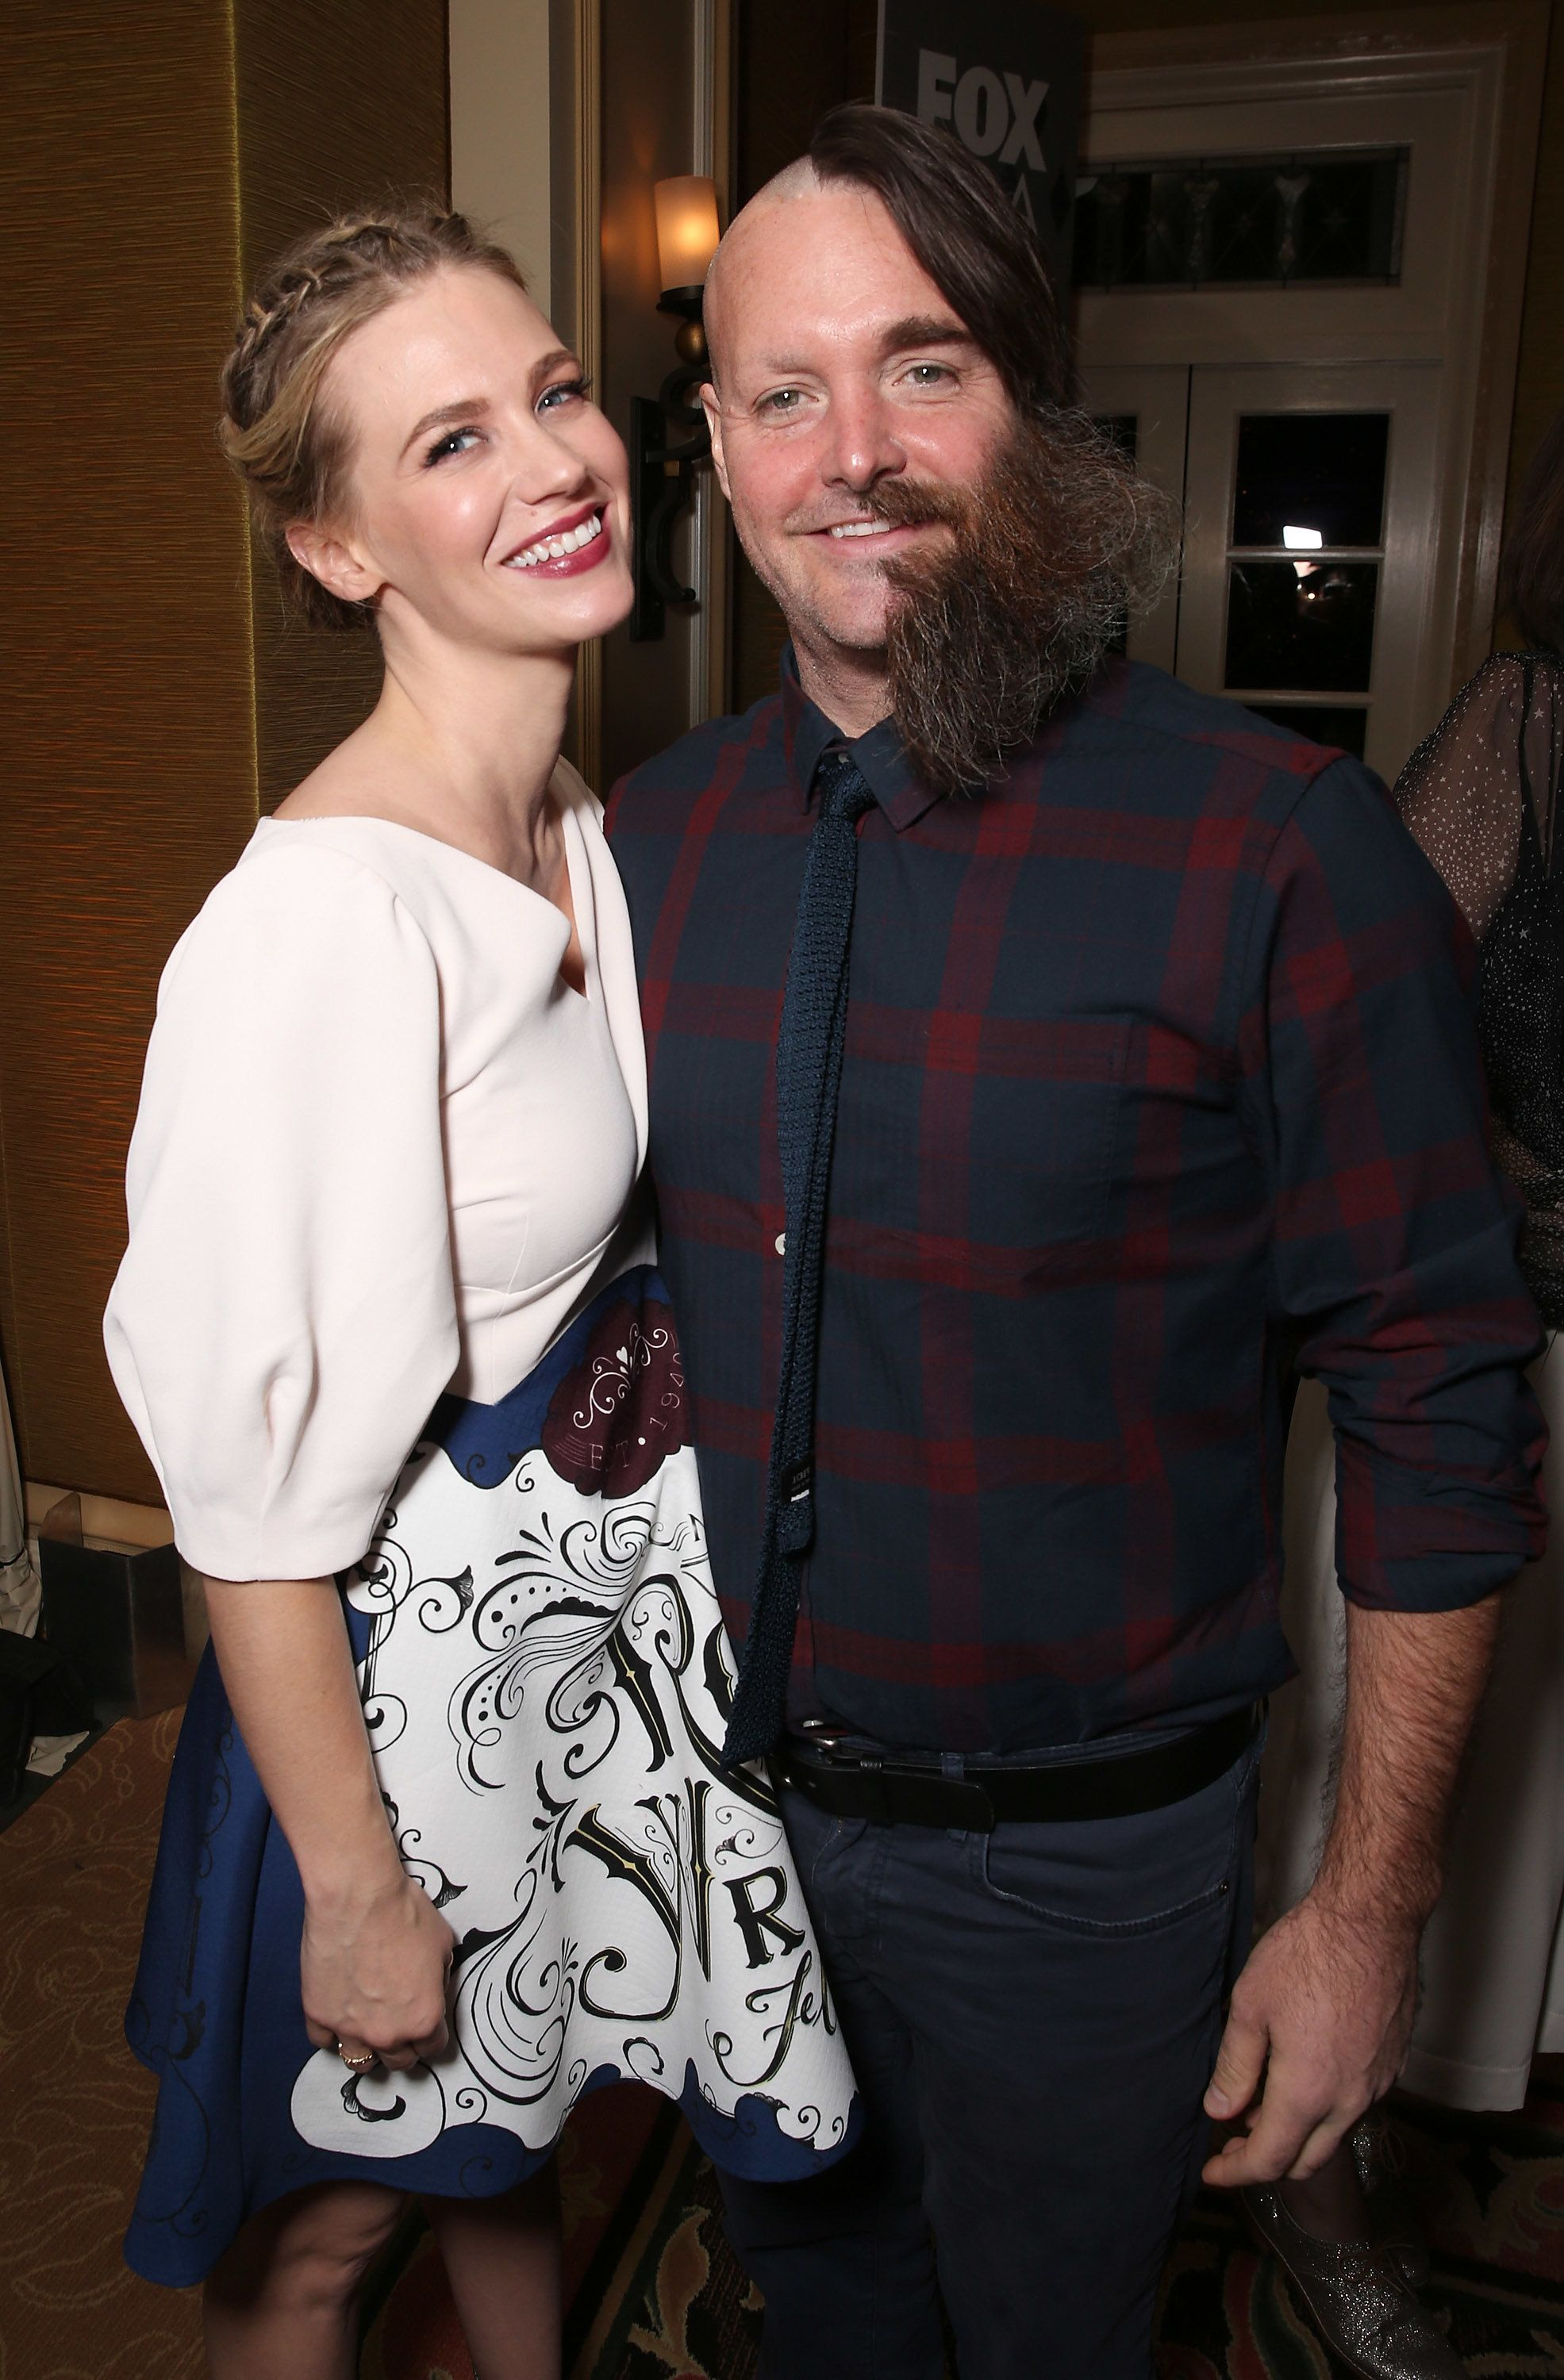 PASADENA, CA - JANUARY 15:  January Jones and Will Forte attend the 2016 Winter TCA Tour FOX All Star Party at The Langham Huntington Hotel and Spa on January 15, 2016 in Pasadena, California.  (Photo by Todd Williamson/Getty Images)